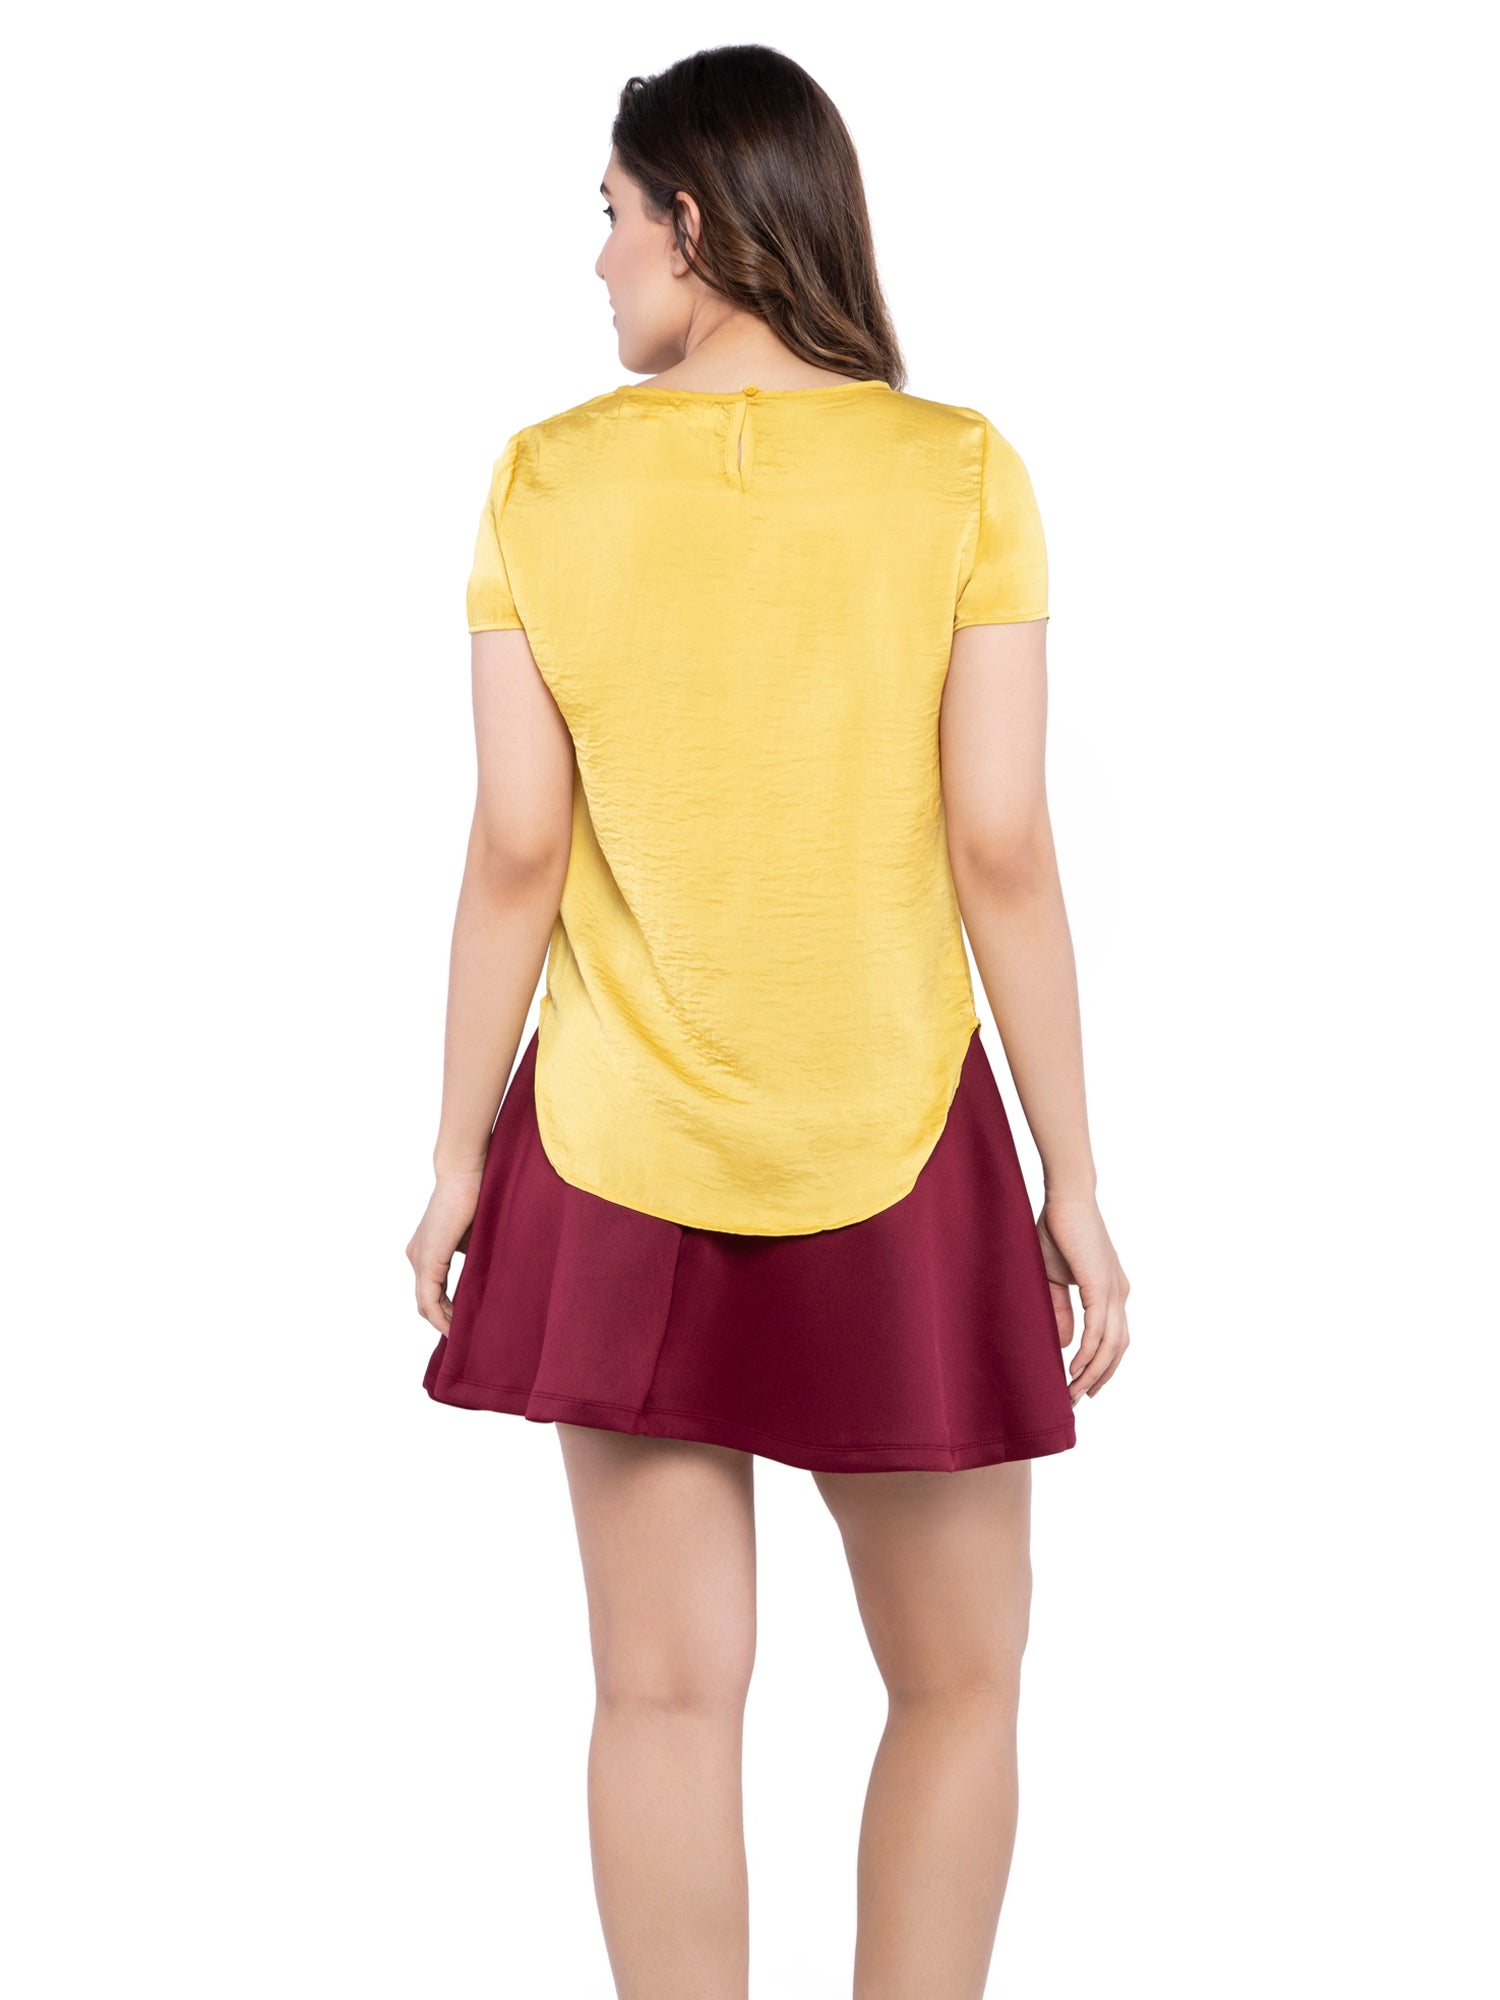 Ficuster Women Yellow Satin Top